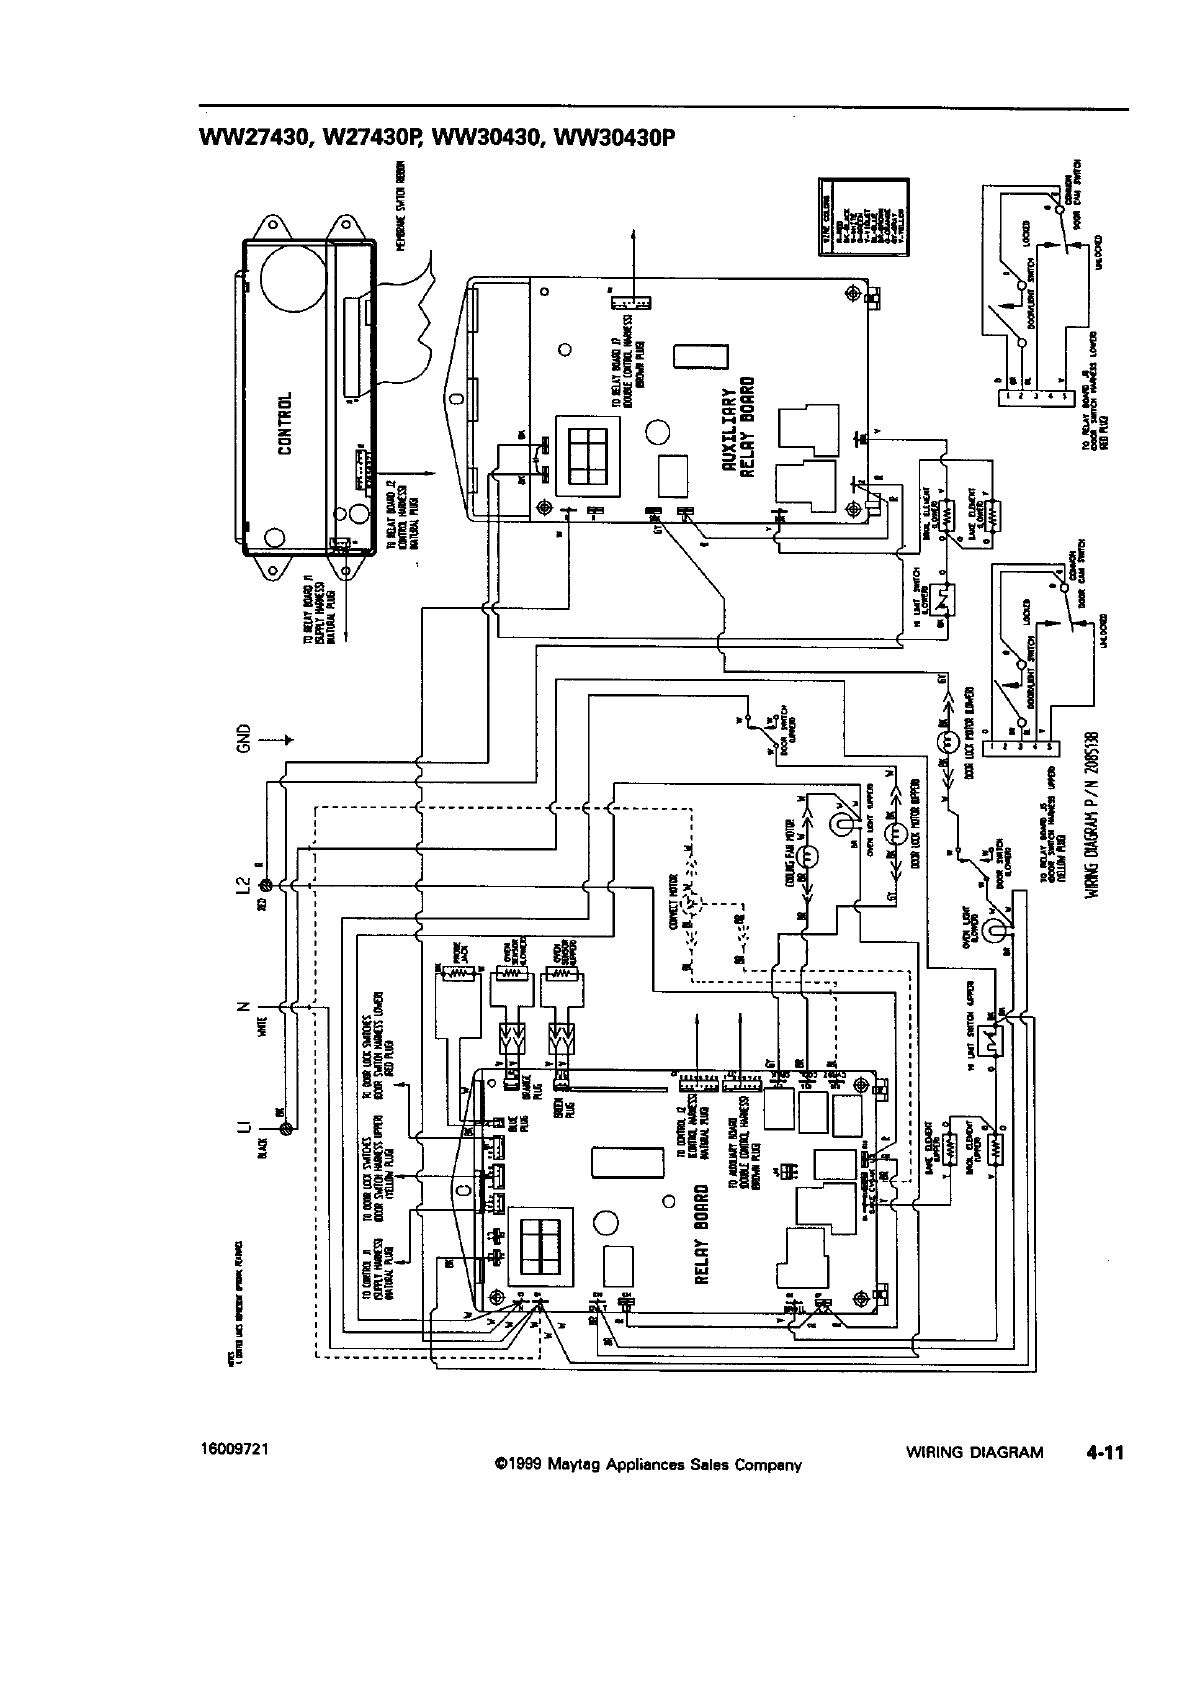 52b2f415 78fa 4259 88c0 be210120d02a bg2b page 43 of jenn air oven ww30430p user guide manualsonline com Basic Electrical Wiring Diagrams at reclaimingppi.co